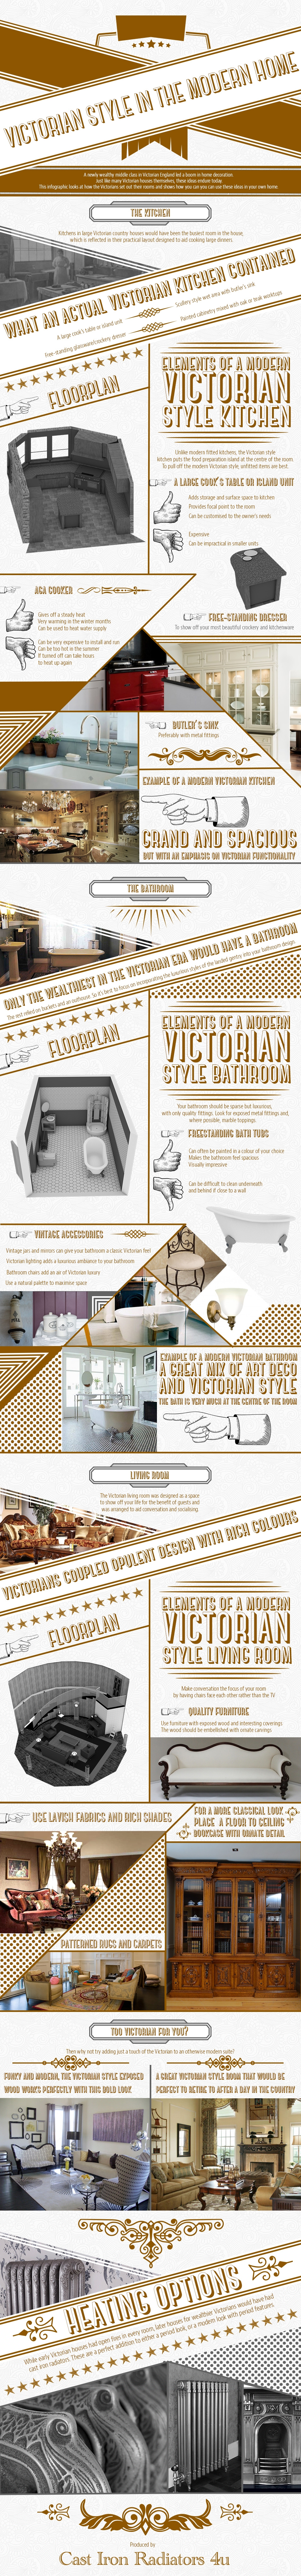 Victorian Style In The Modern Home Infographic Modern House Victorian Fashion Victorian